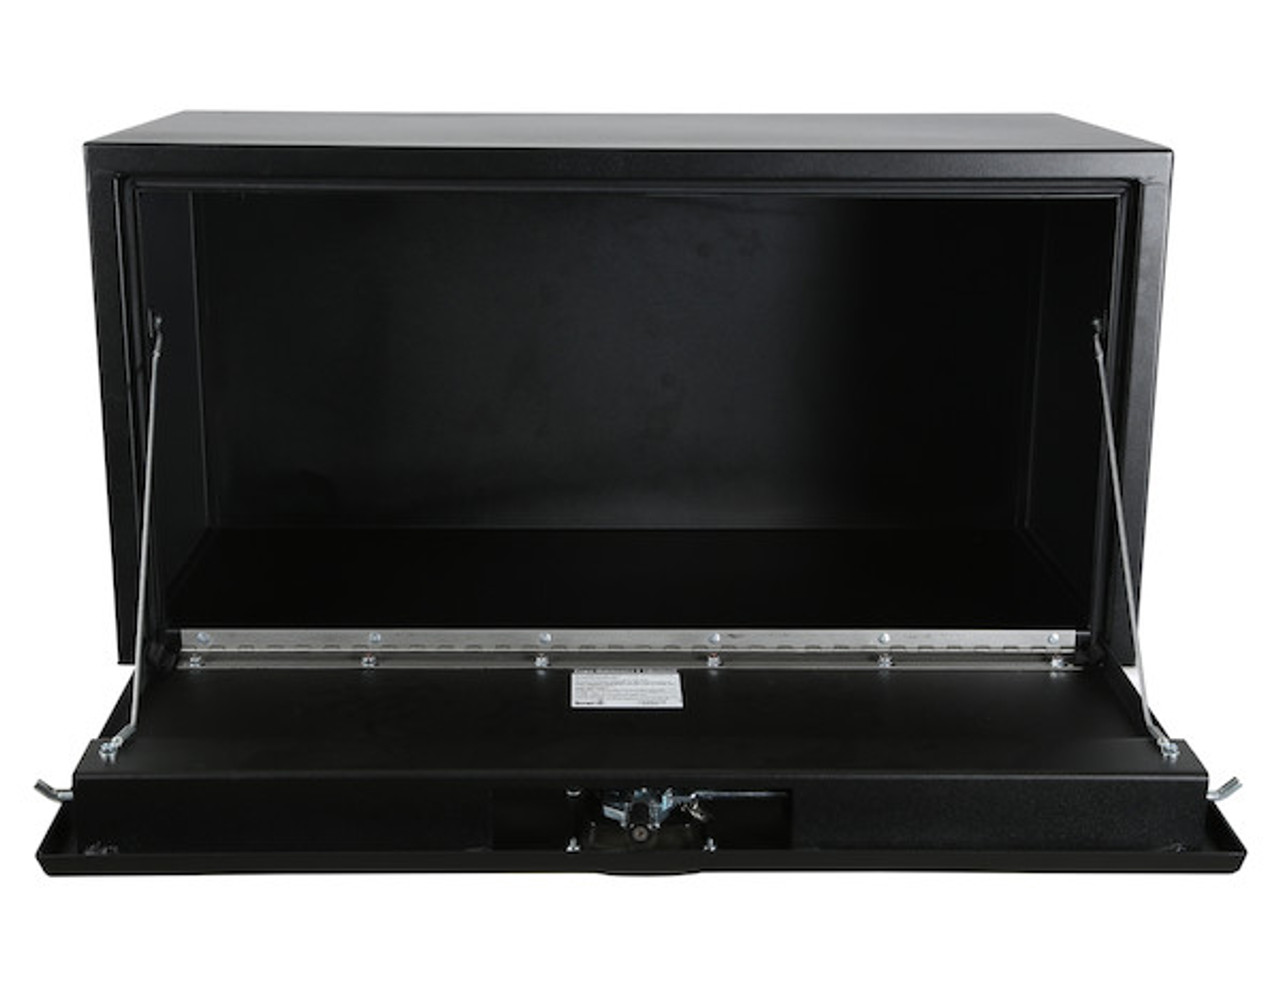 "1734505 BUYERS PRODUCTS TEXTURED MATTE BLACK STEEL UNDERBODY TRUCK TOOLBOX WITH 3-POINT LATCH 24""Hx24""Dx36""W  Picture # 5"